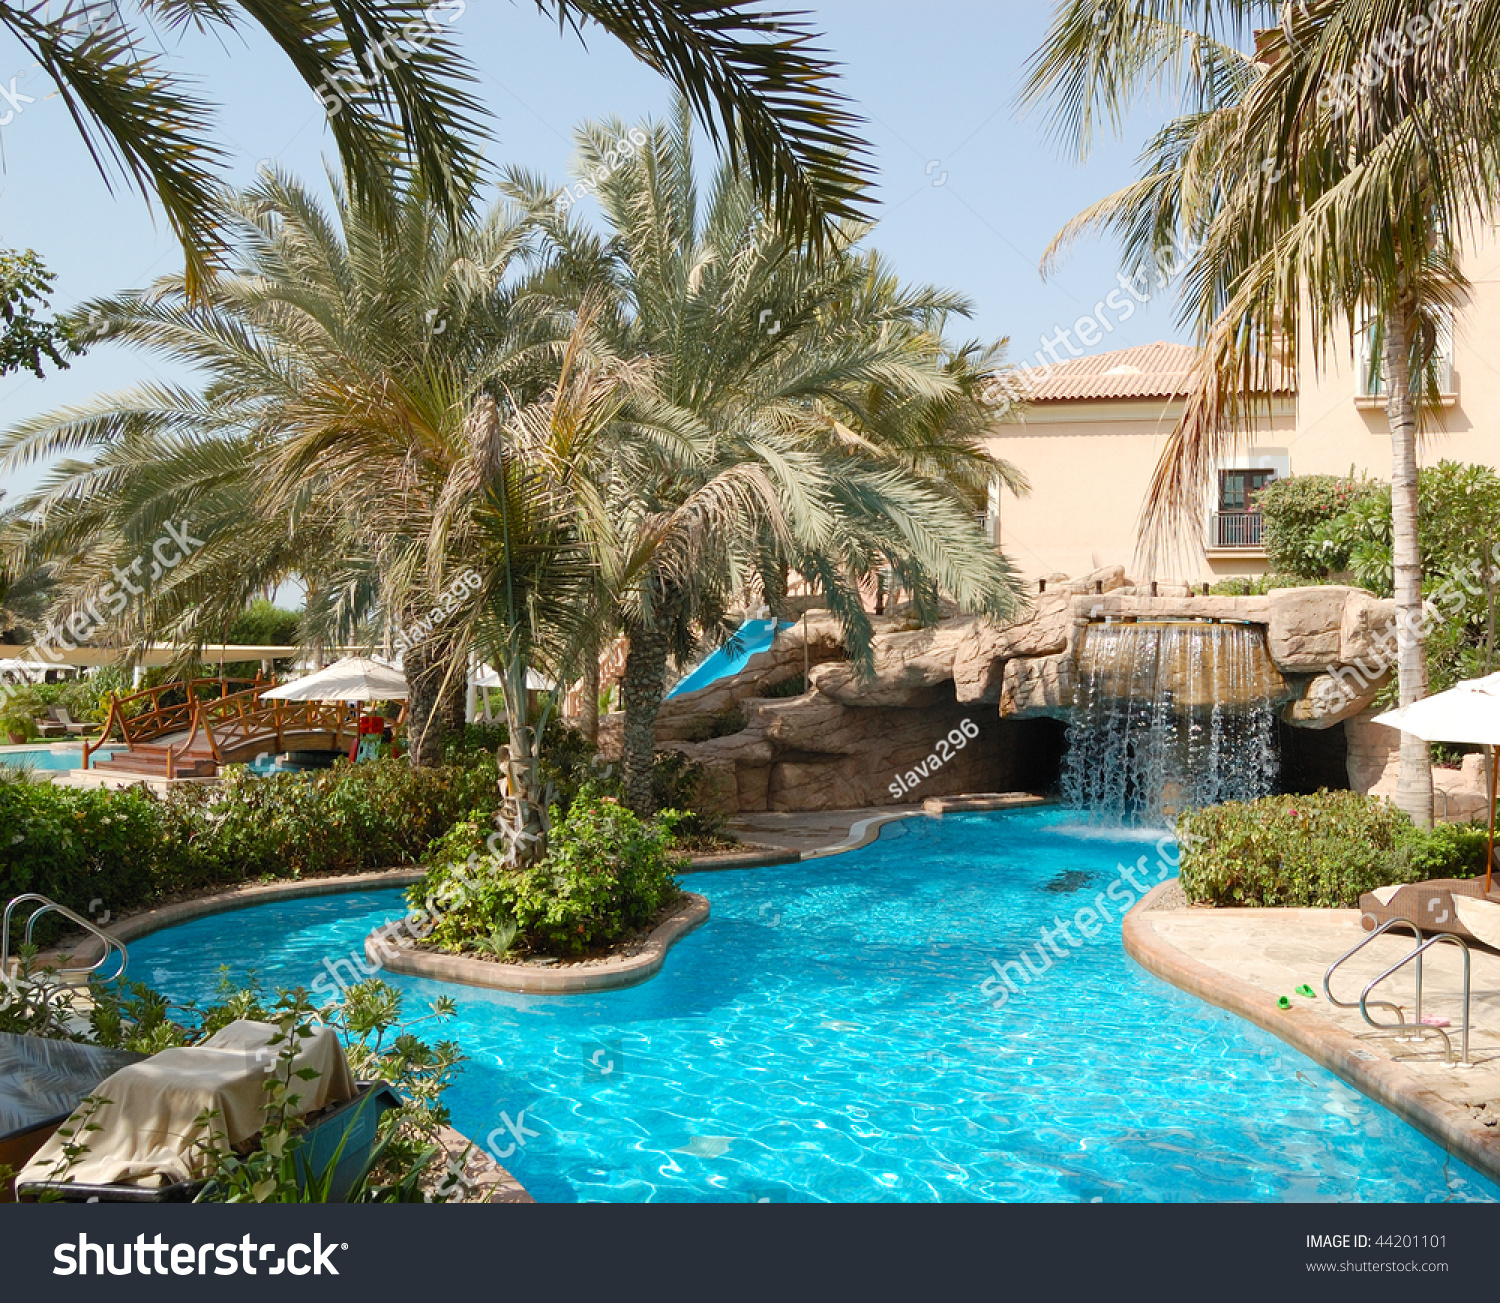 Swimming Pool Luxury Hotel Dubai United Stock Photo 44201101 Shutterstock